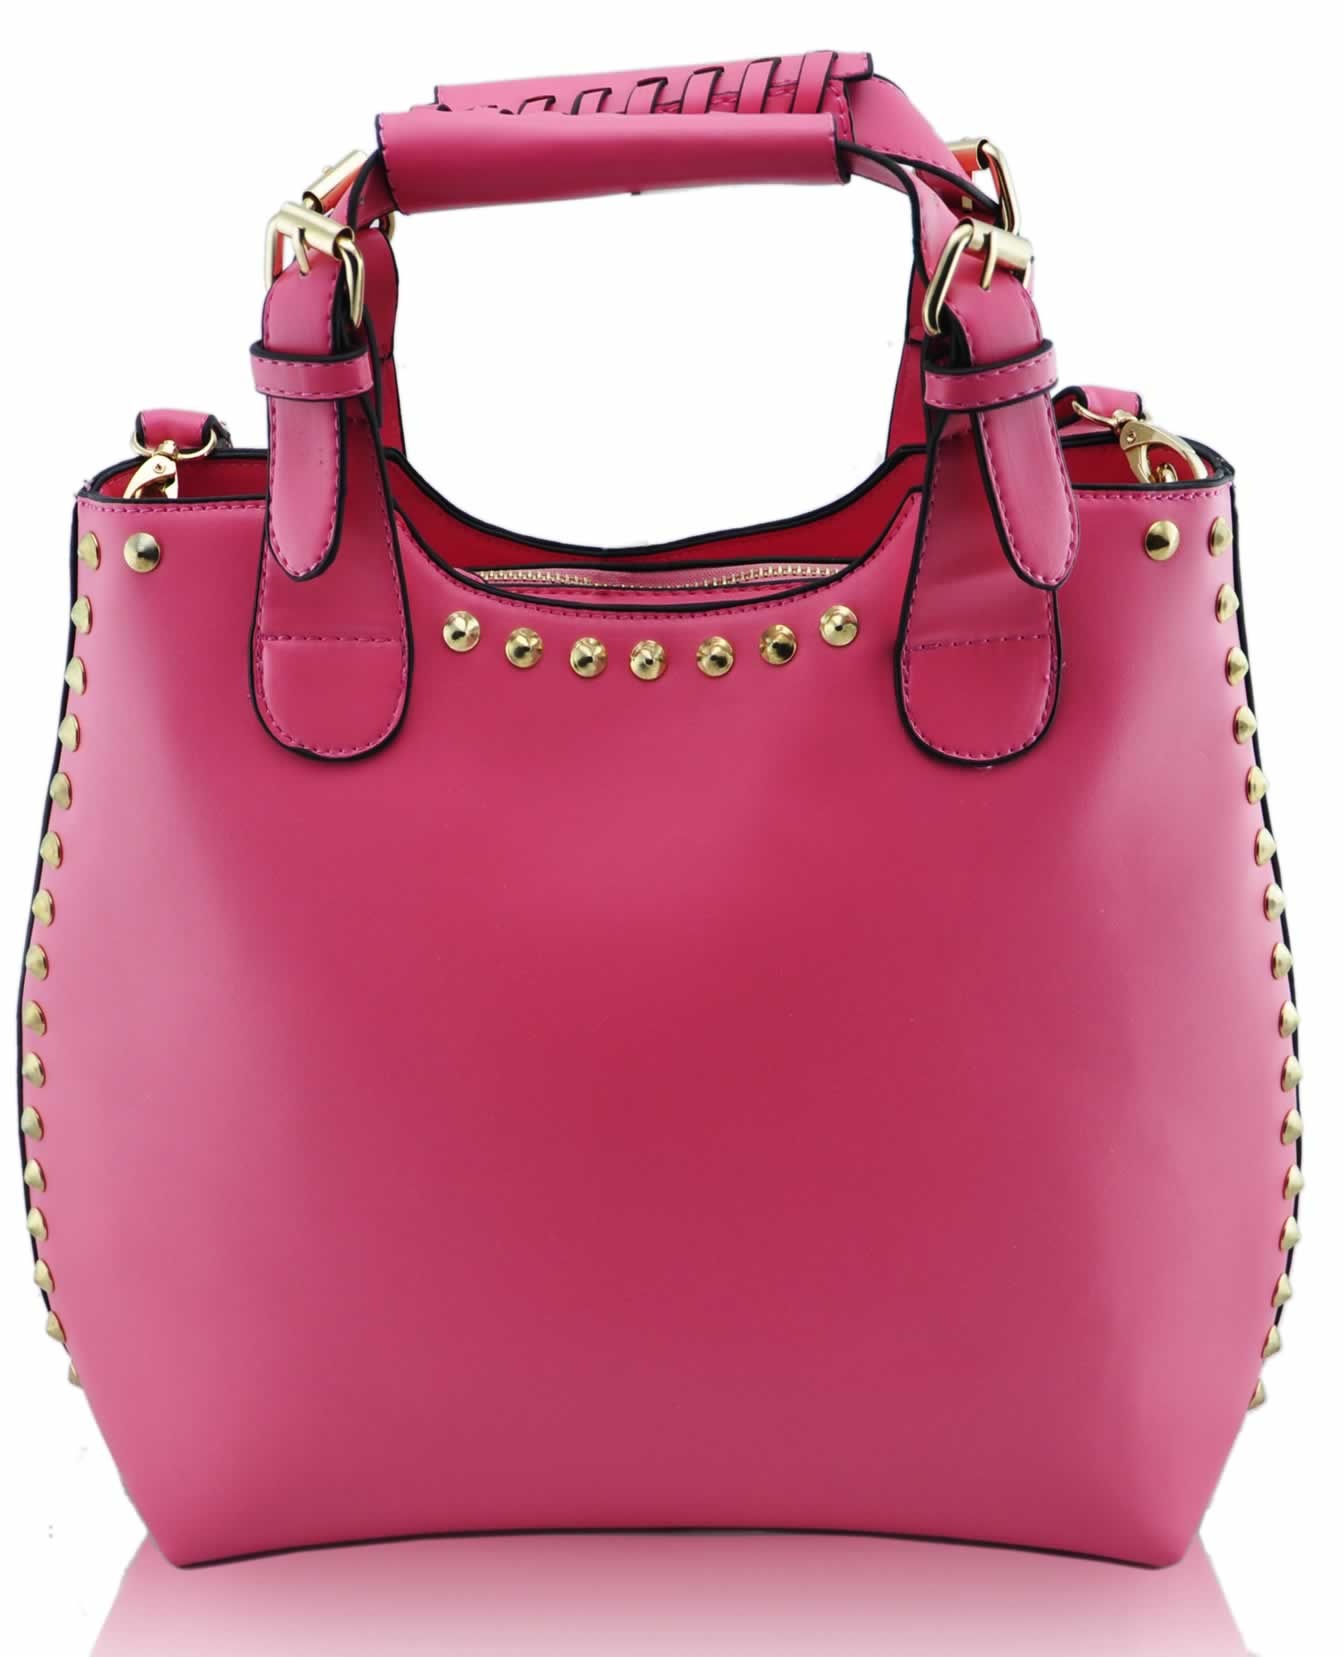 Pink Bags Sale: Save Up to 70% Off! Shop tennesseemyblogw0.cf's huge selection of Pink Bags - Over styles available. FREE Shipping & Exchanges, and a % price guarantee!